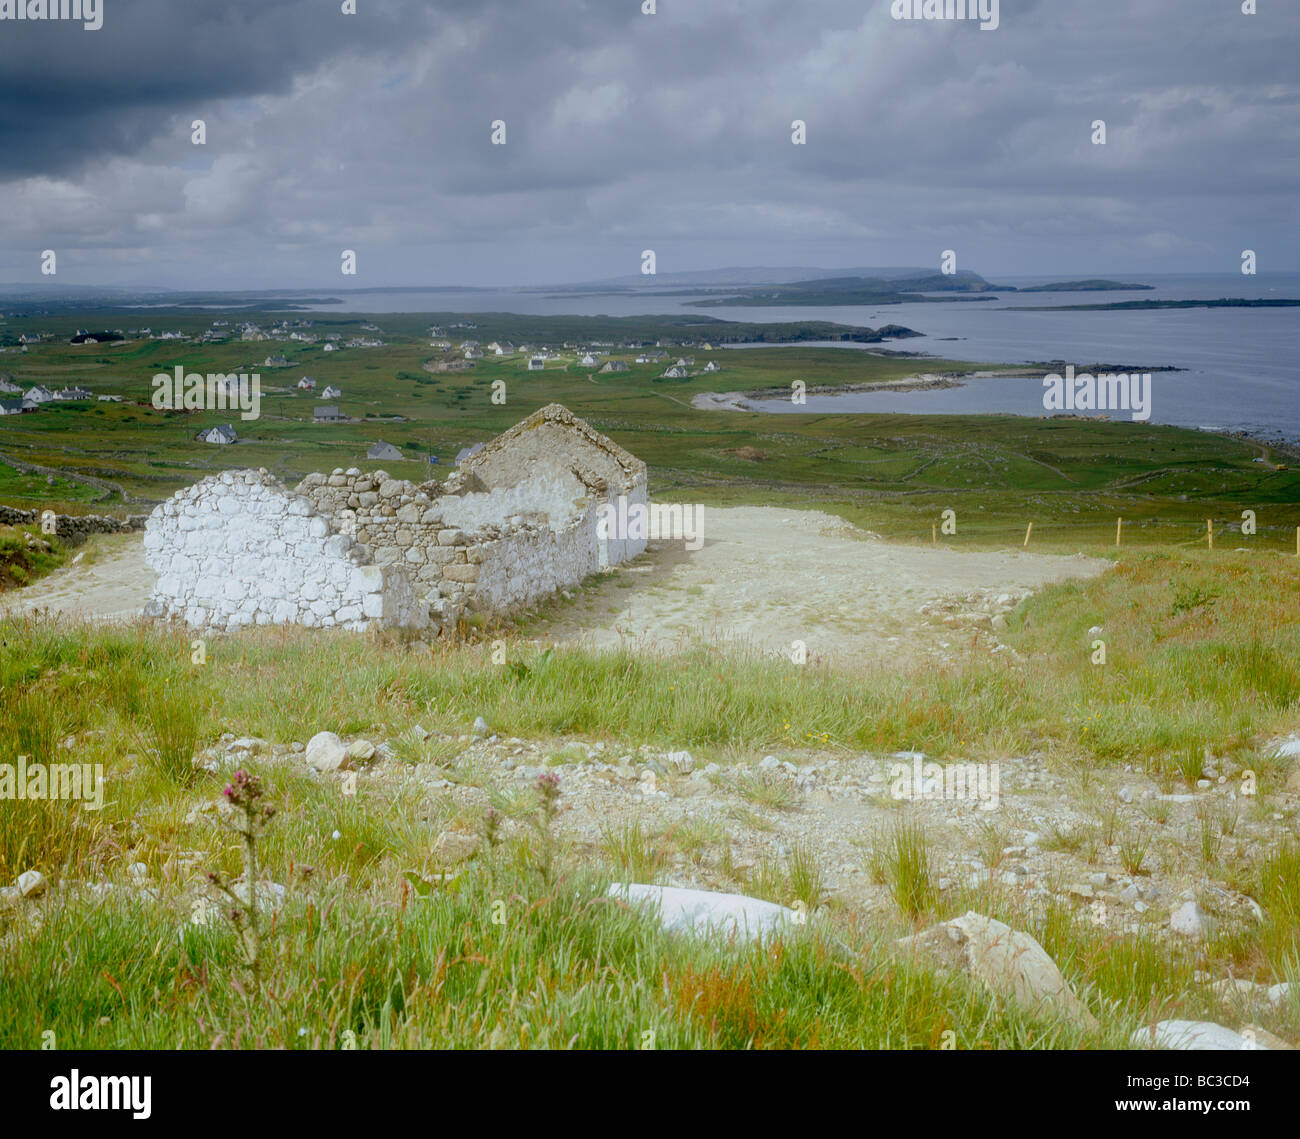 Deserted ruined house at Bloody Foreland, Donegal, Ireland - Stock Image